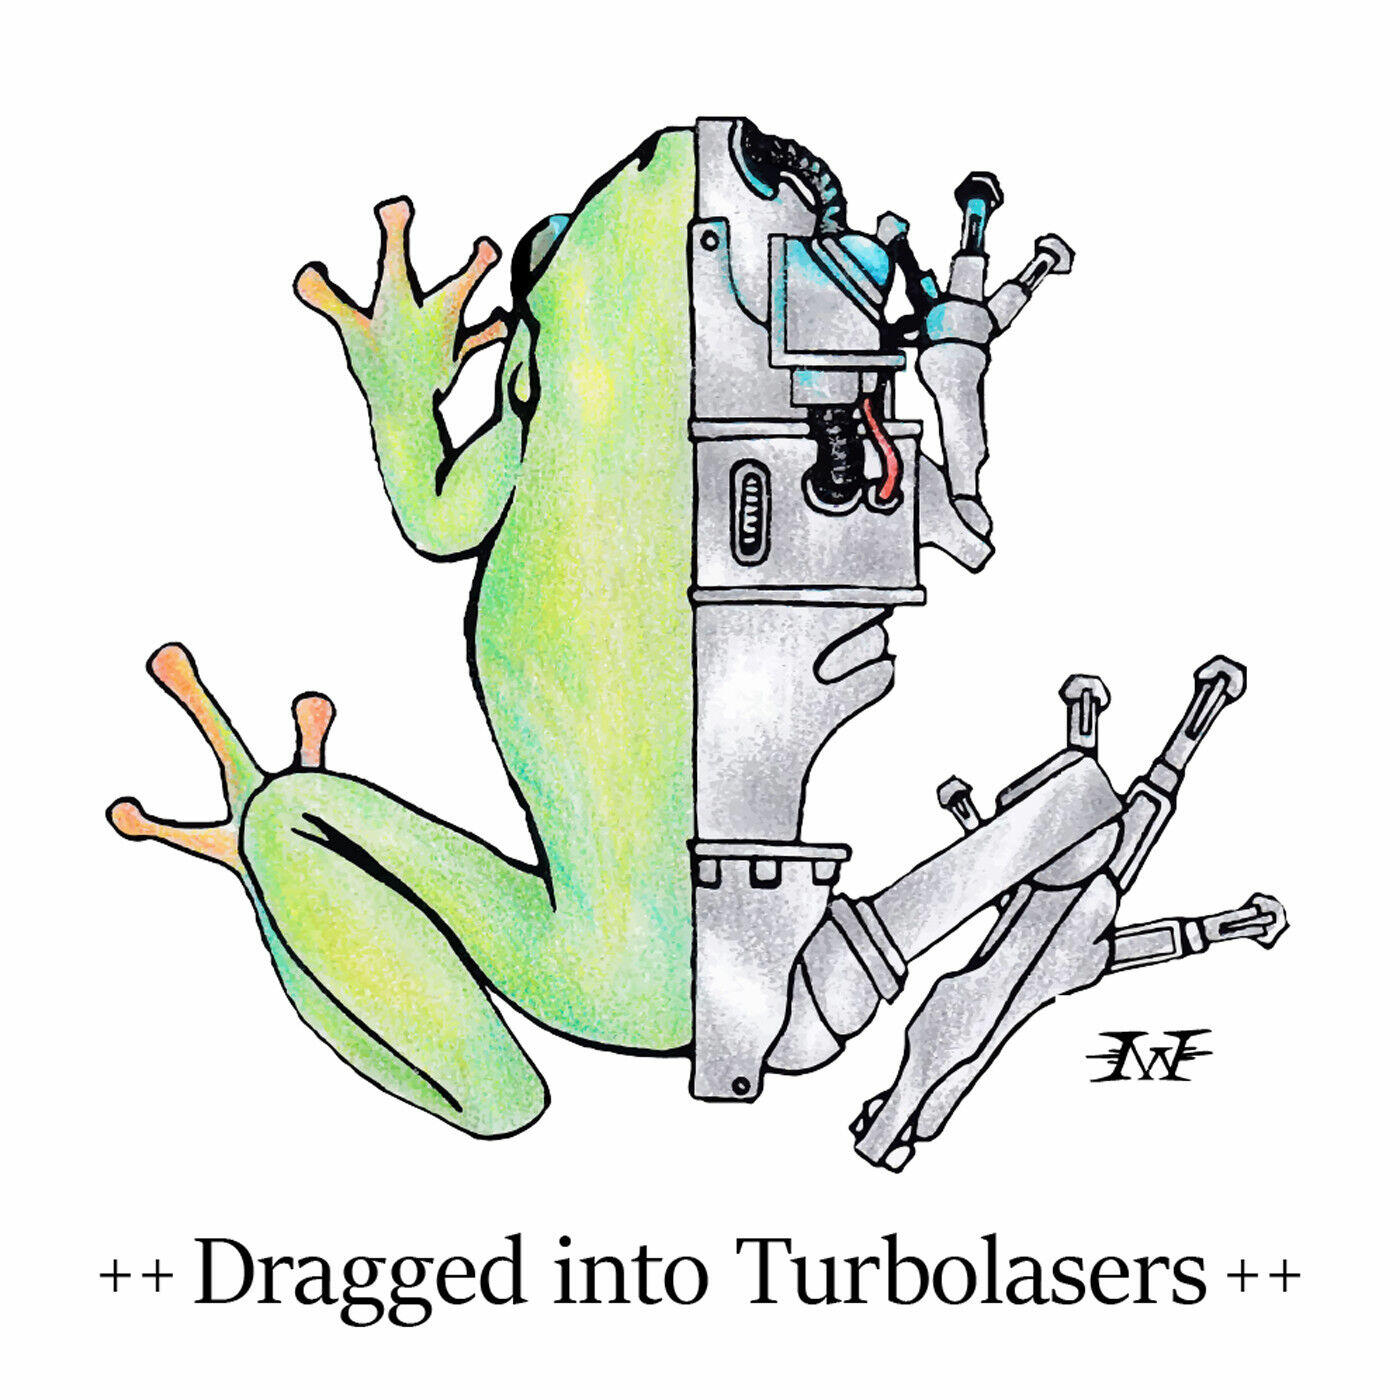 Dragged into Turbolasers